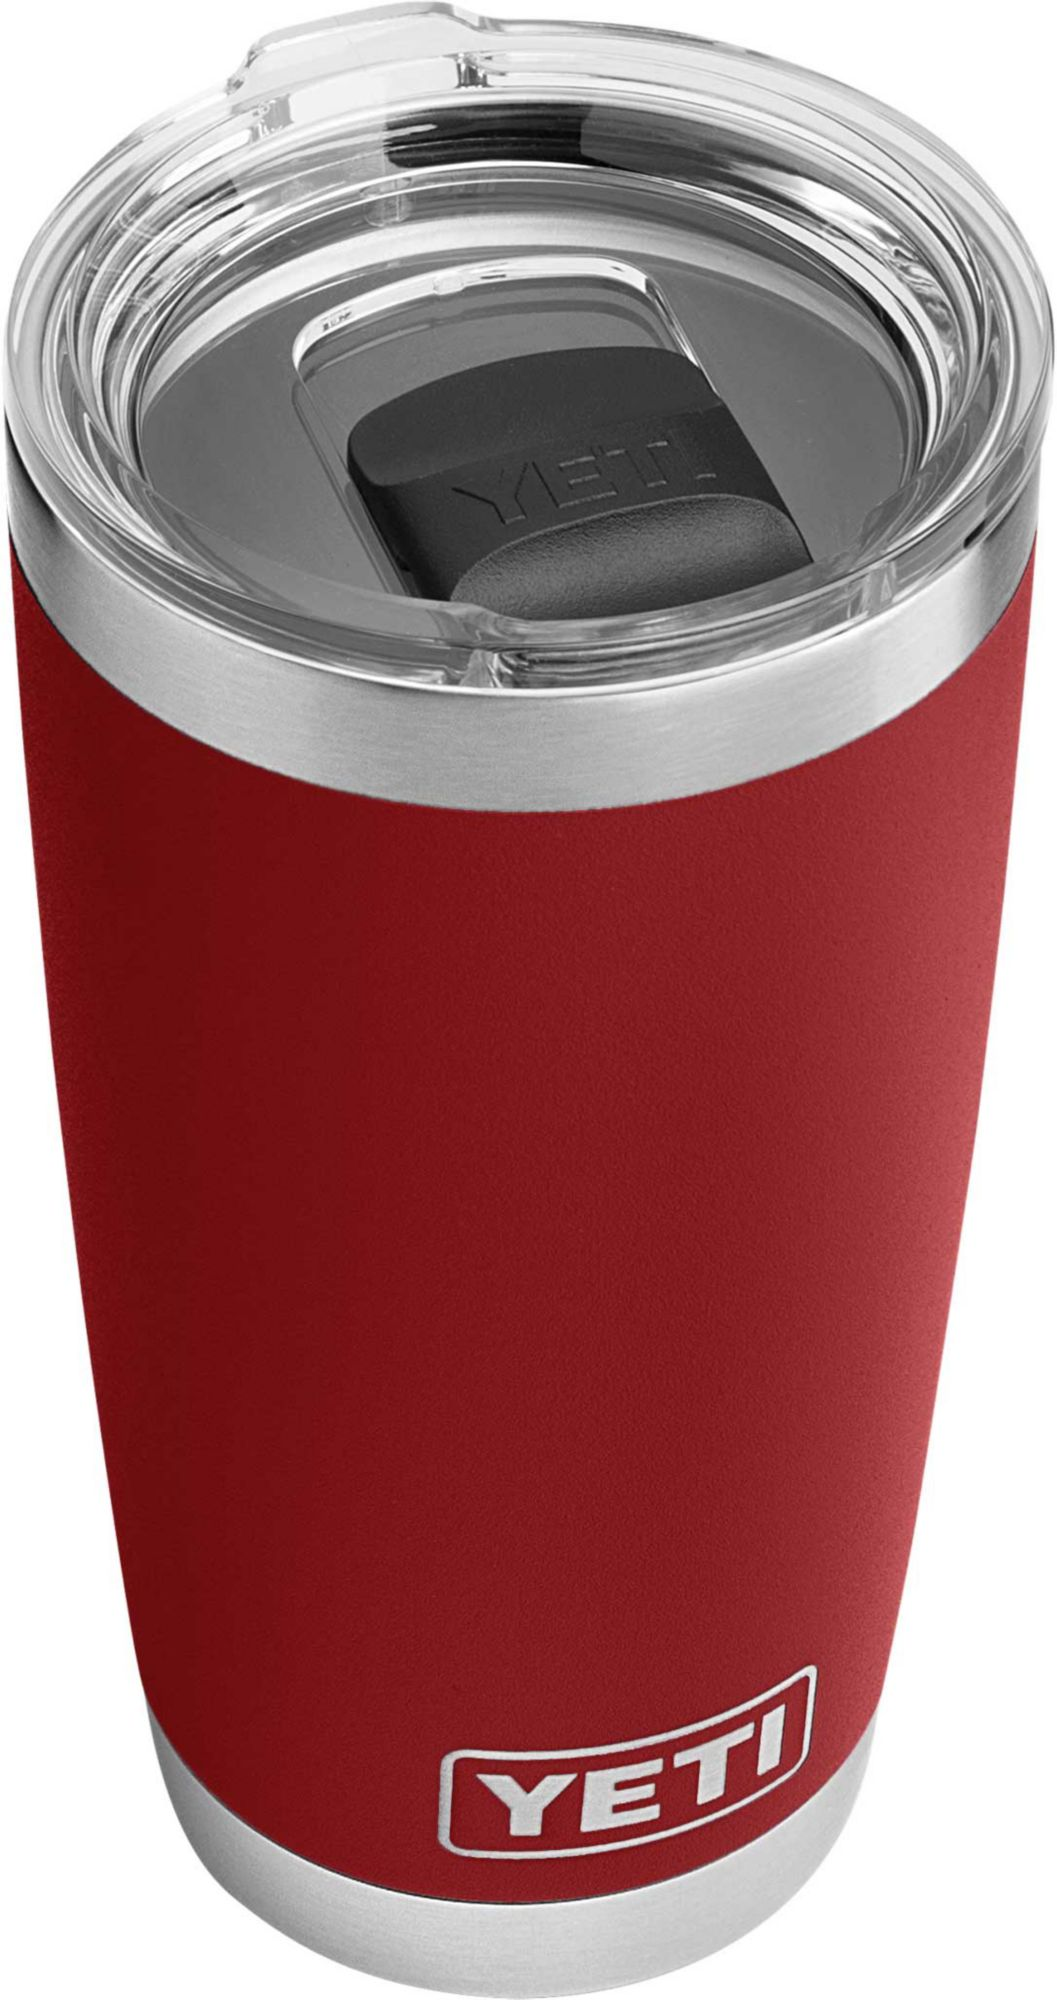 Yeti 20 Oz. Rambler Tumbler With Mag Slider Lid by Yeti